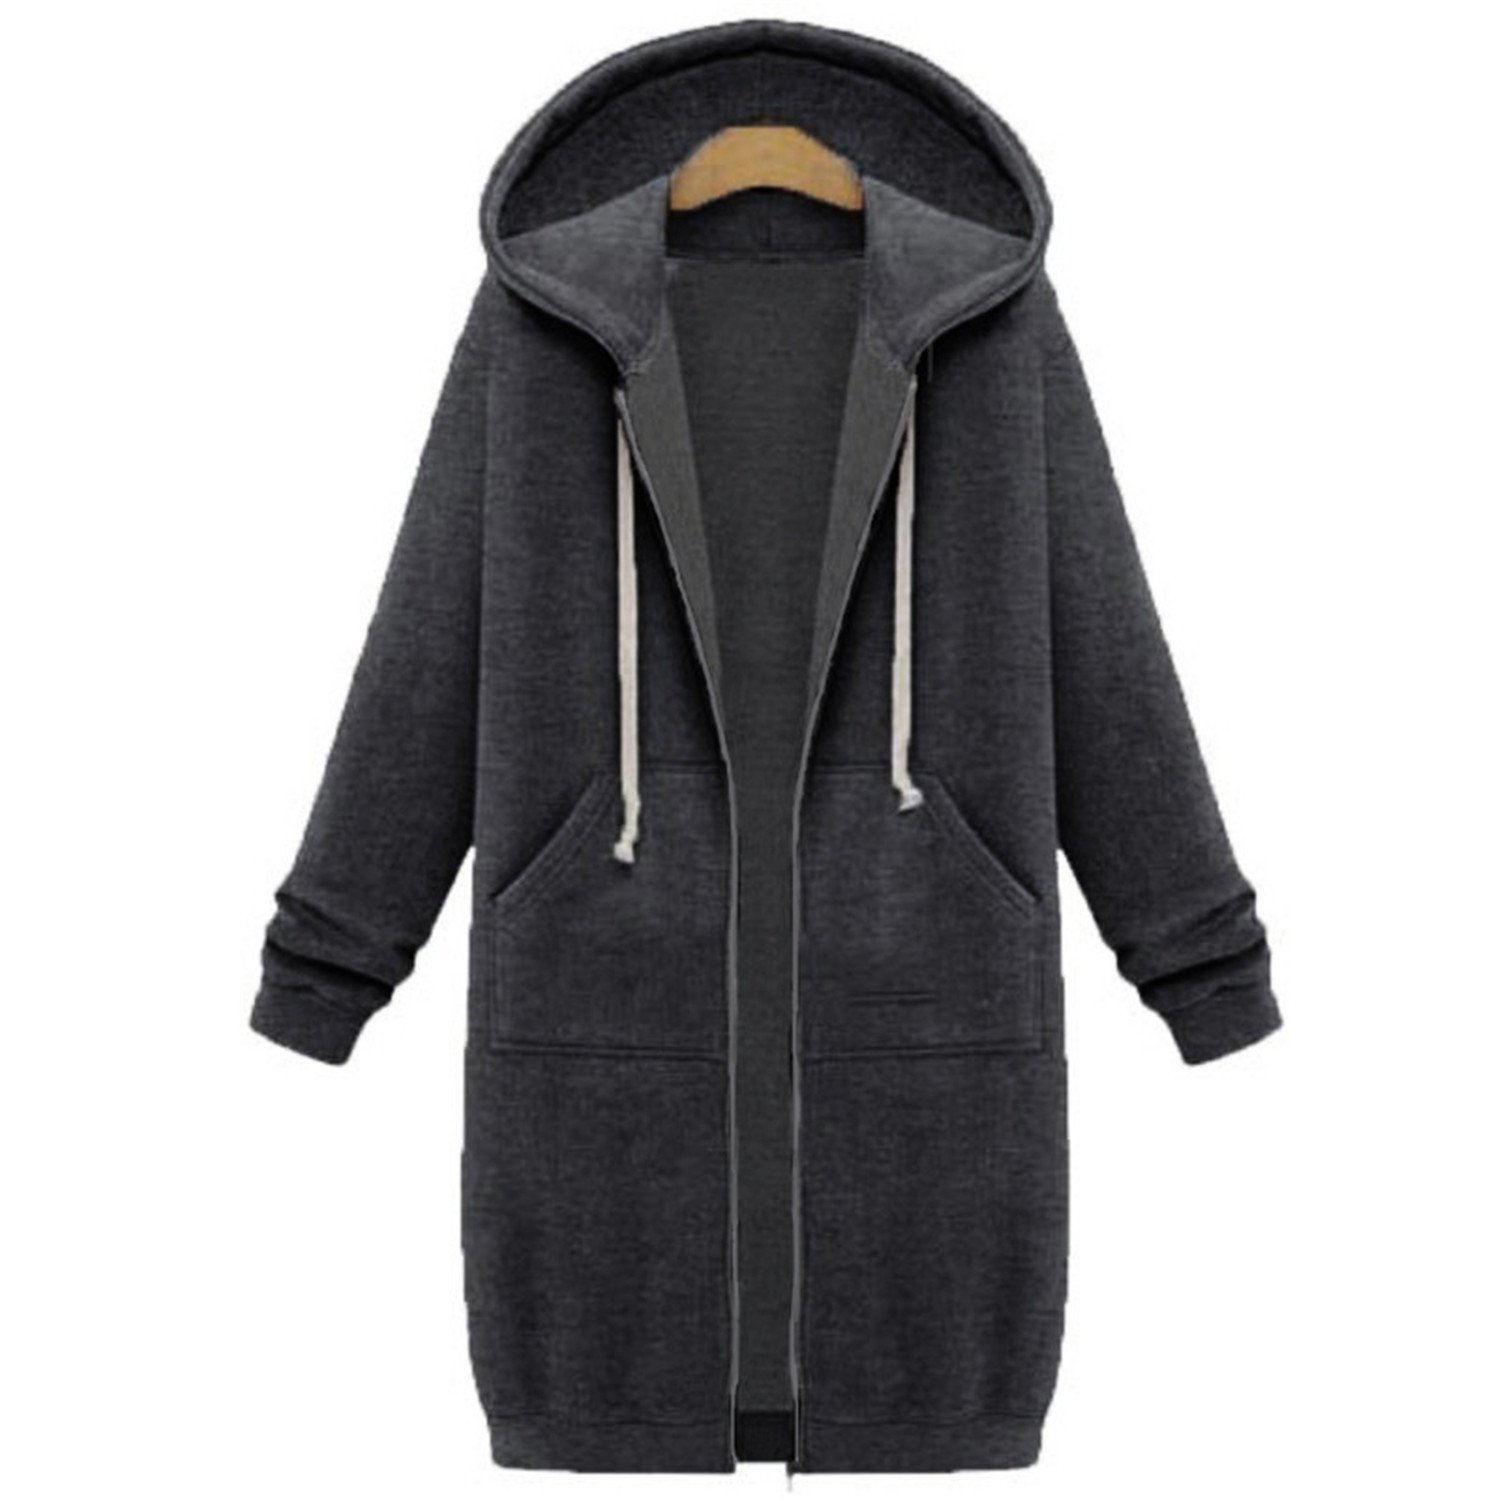 f0ad385e98e Women Casual Long Hoodies Sweatshirt Coat Pockets Zip Up Outerwear Hooded  Jacket Plus Size Tops at Amazon Women s Clothing store